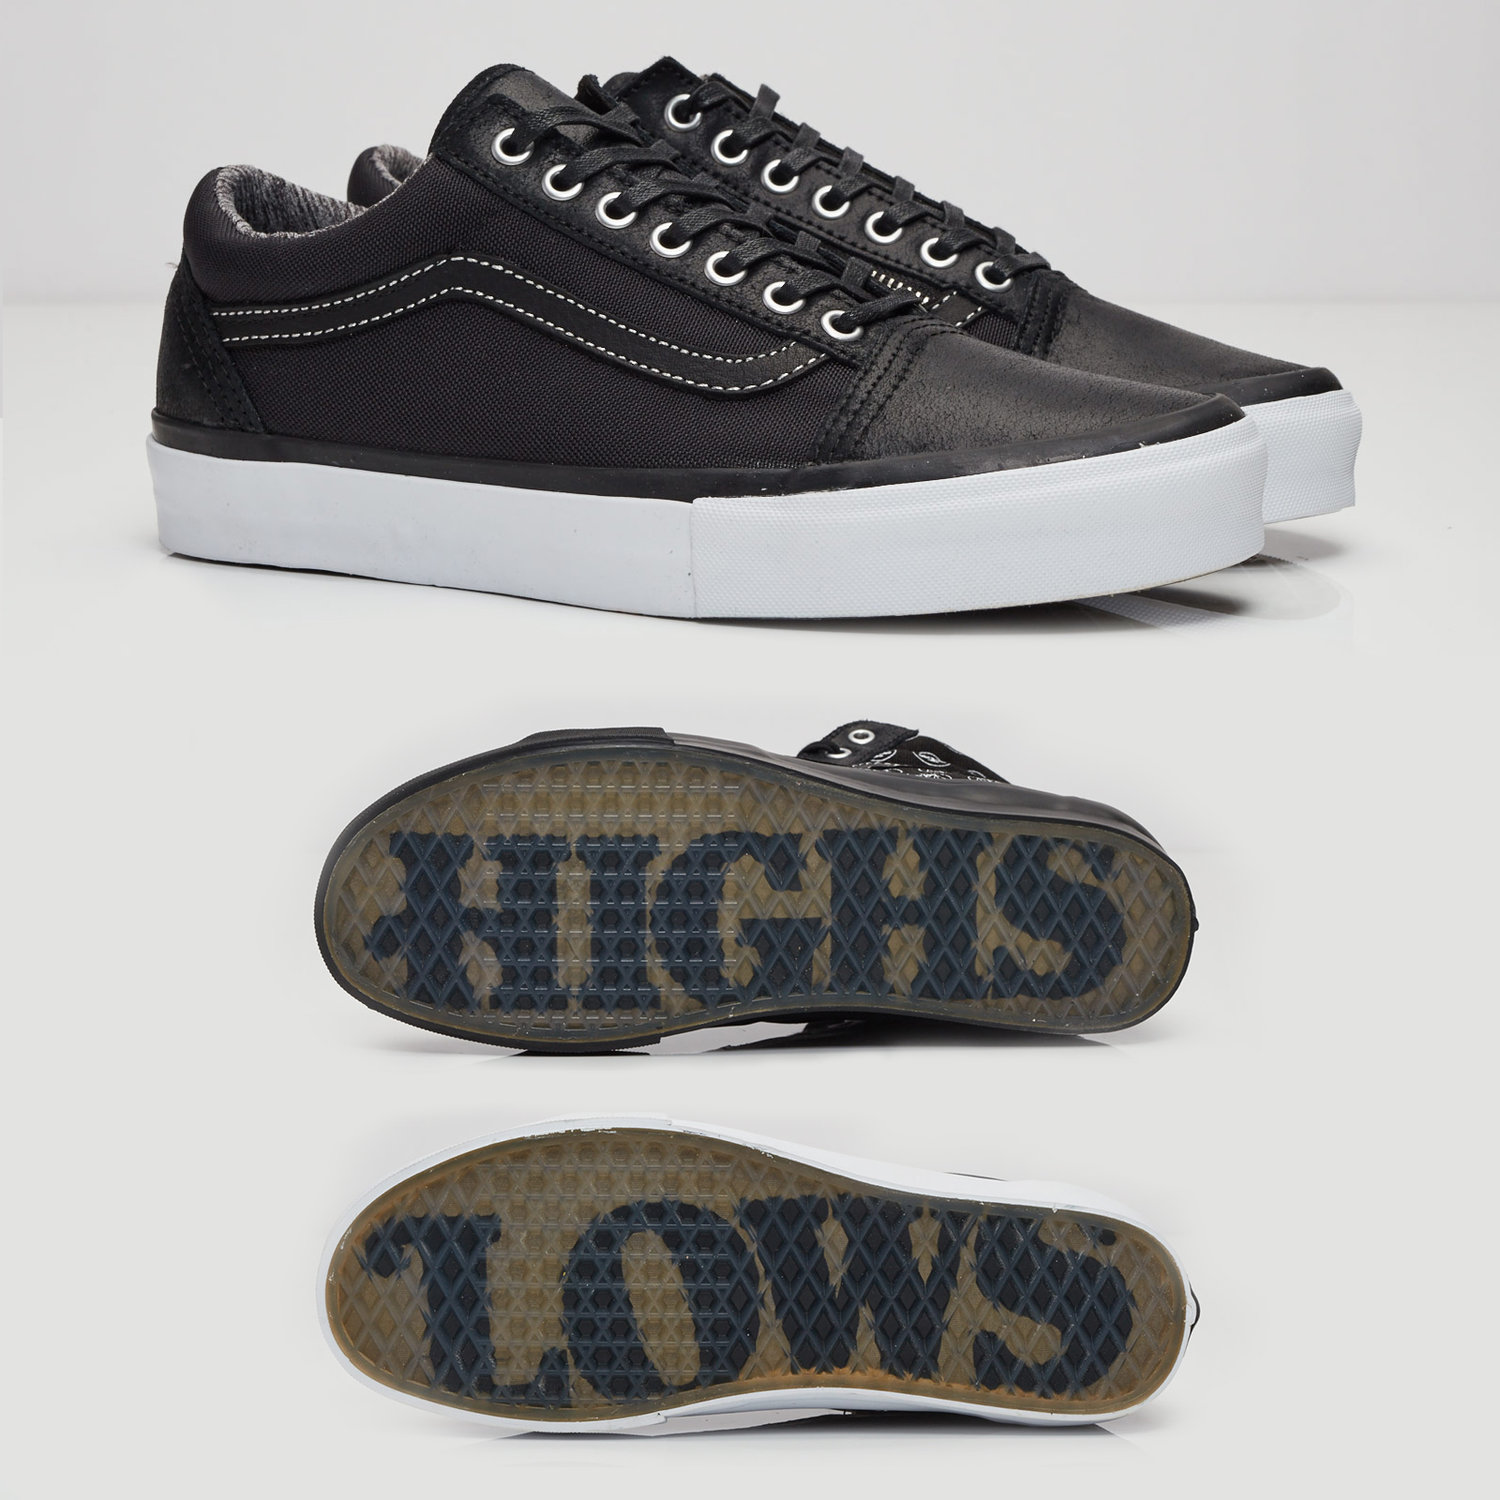 7216c66a13 Vault by Vans x Highs   Lows Old Skool Zip and Sk8 Hi LX — strictly ...